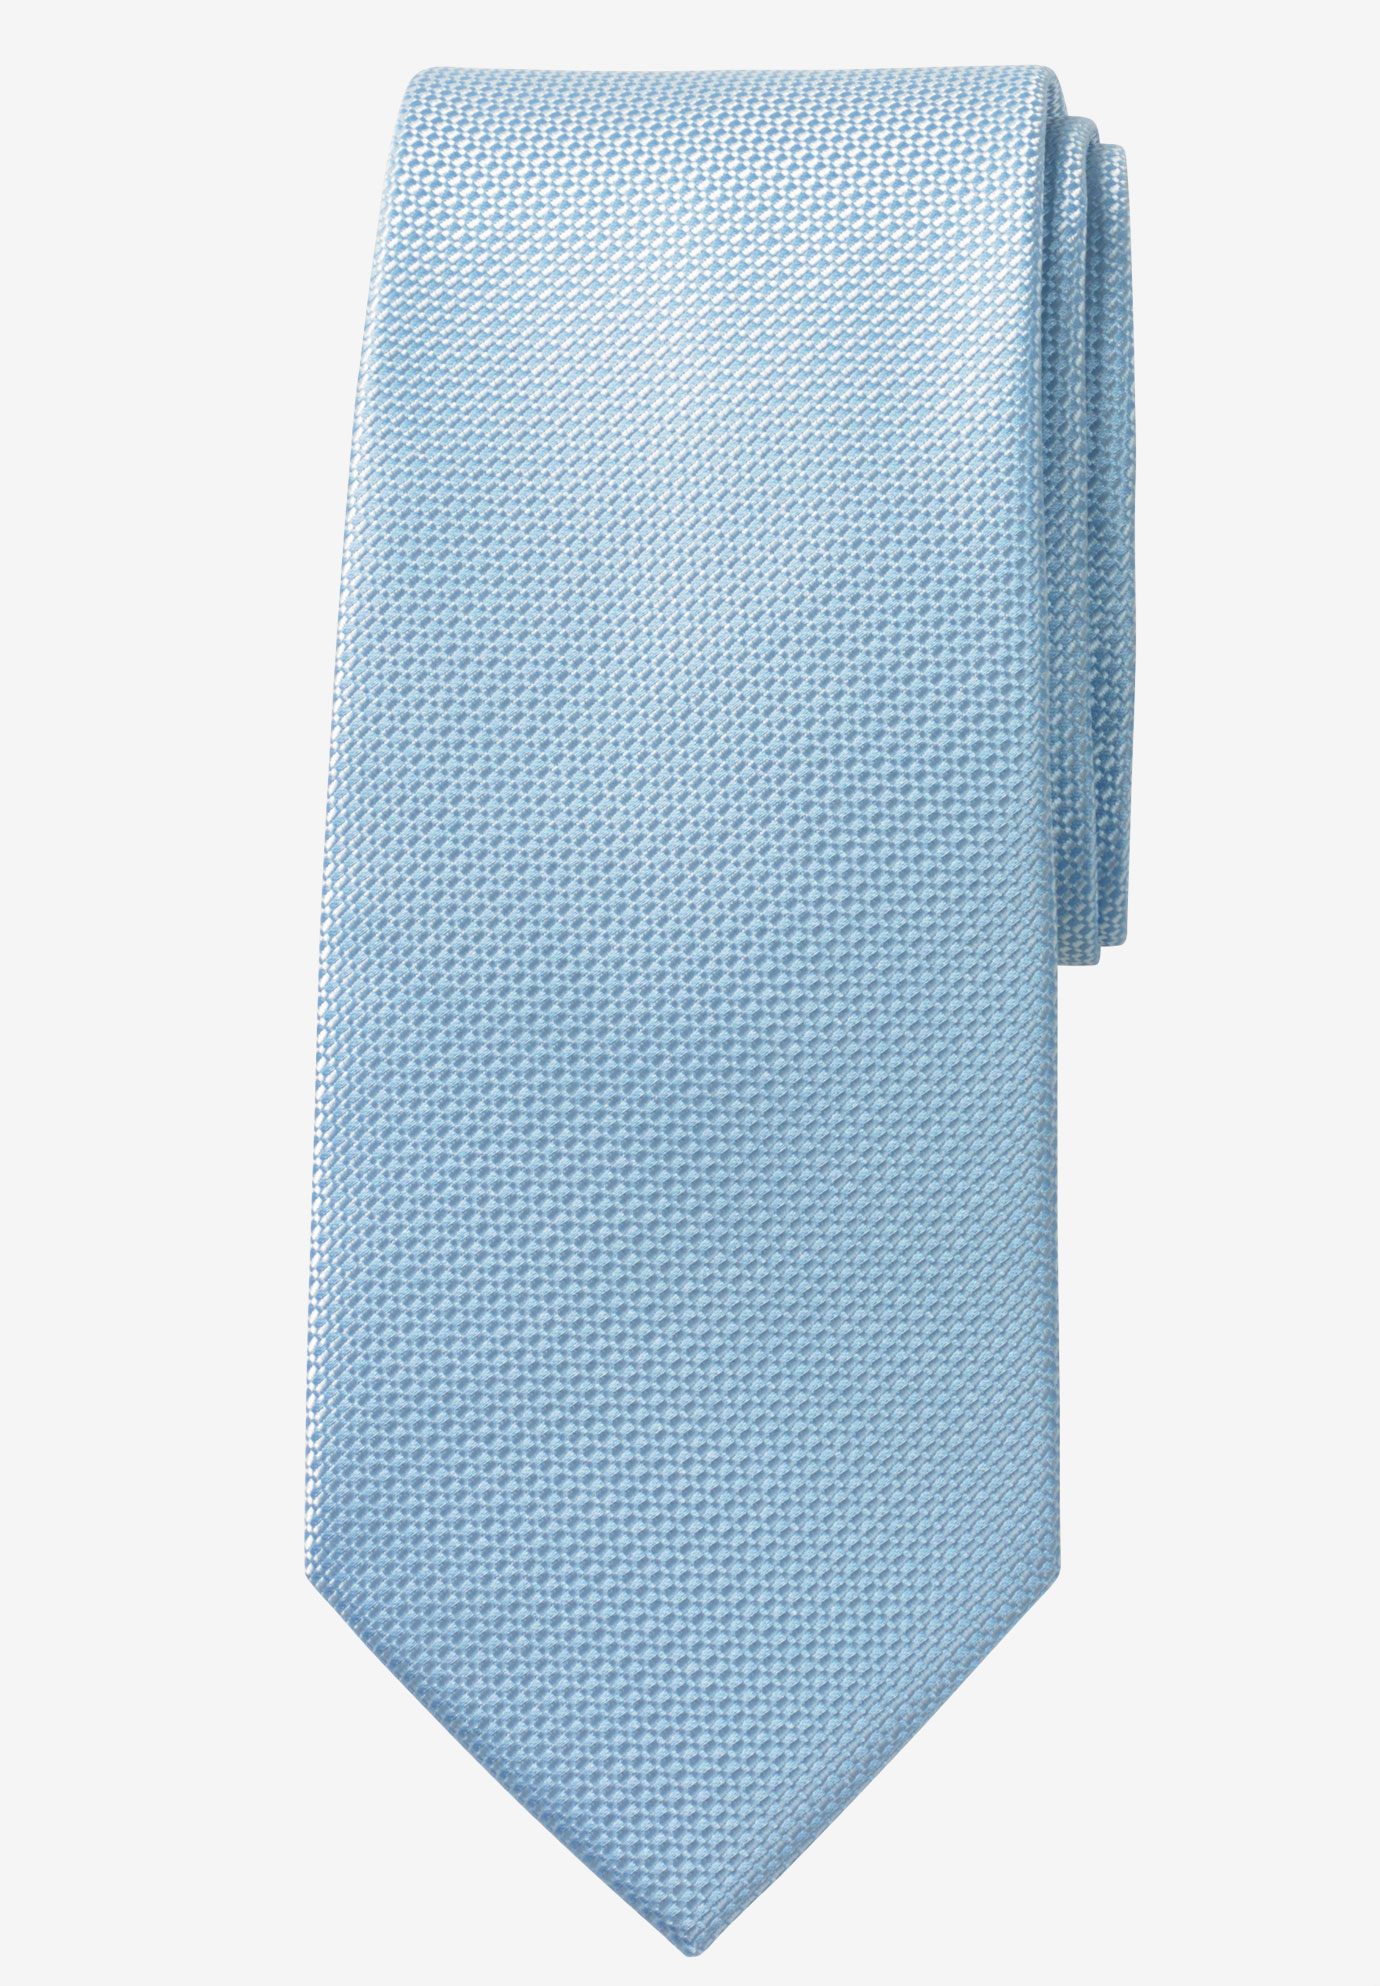 Extra Long Solid Tie by KS Signature, SKY BLUE